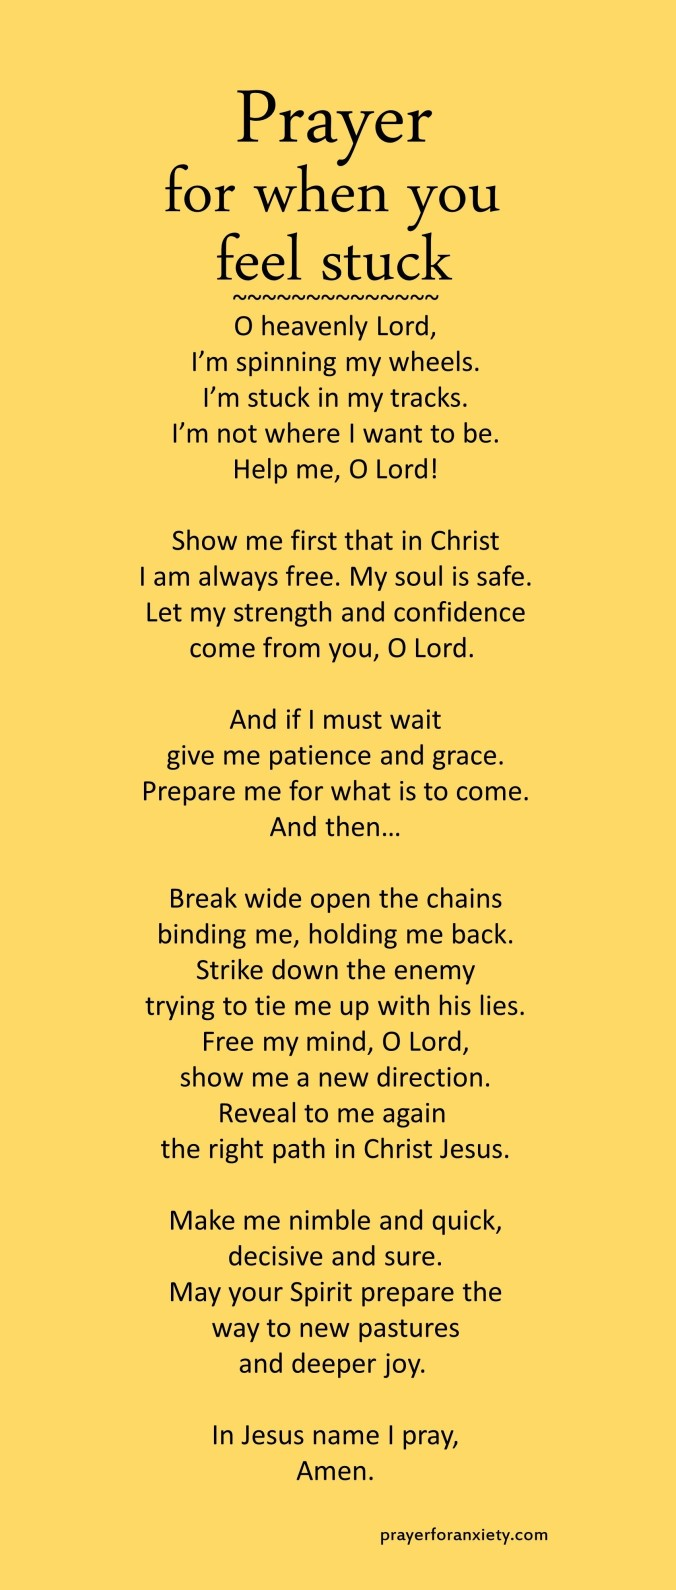 Prayer for when you feel stuck